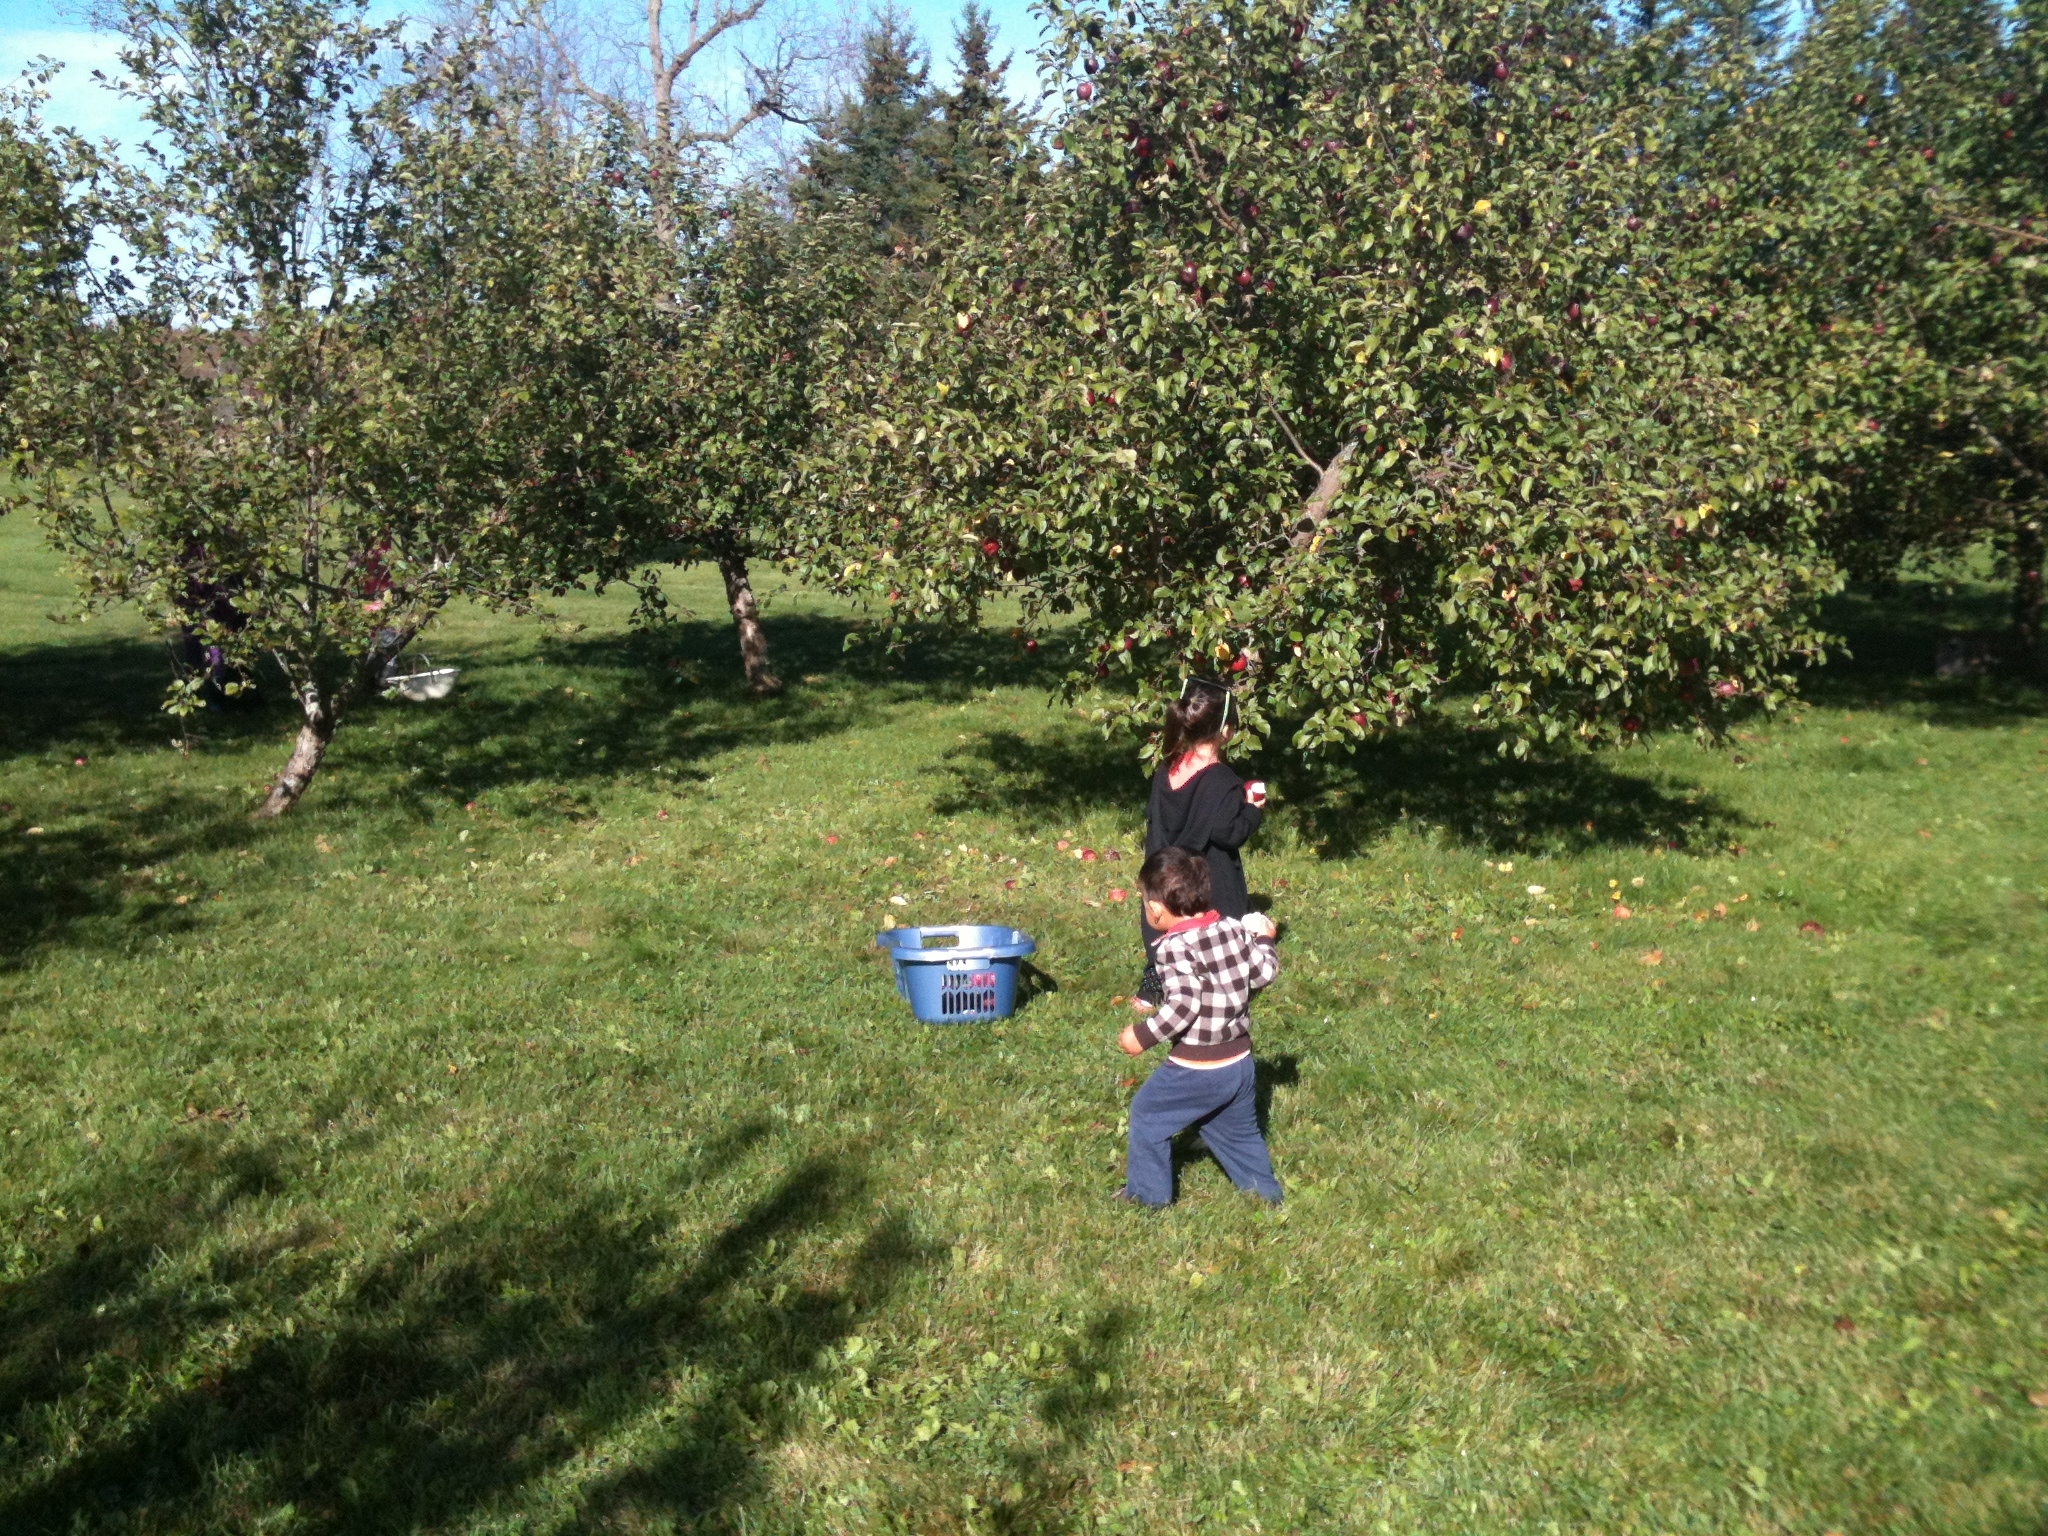 A 4-year-old girl and 2-year-old boy pick apples at an orchard.